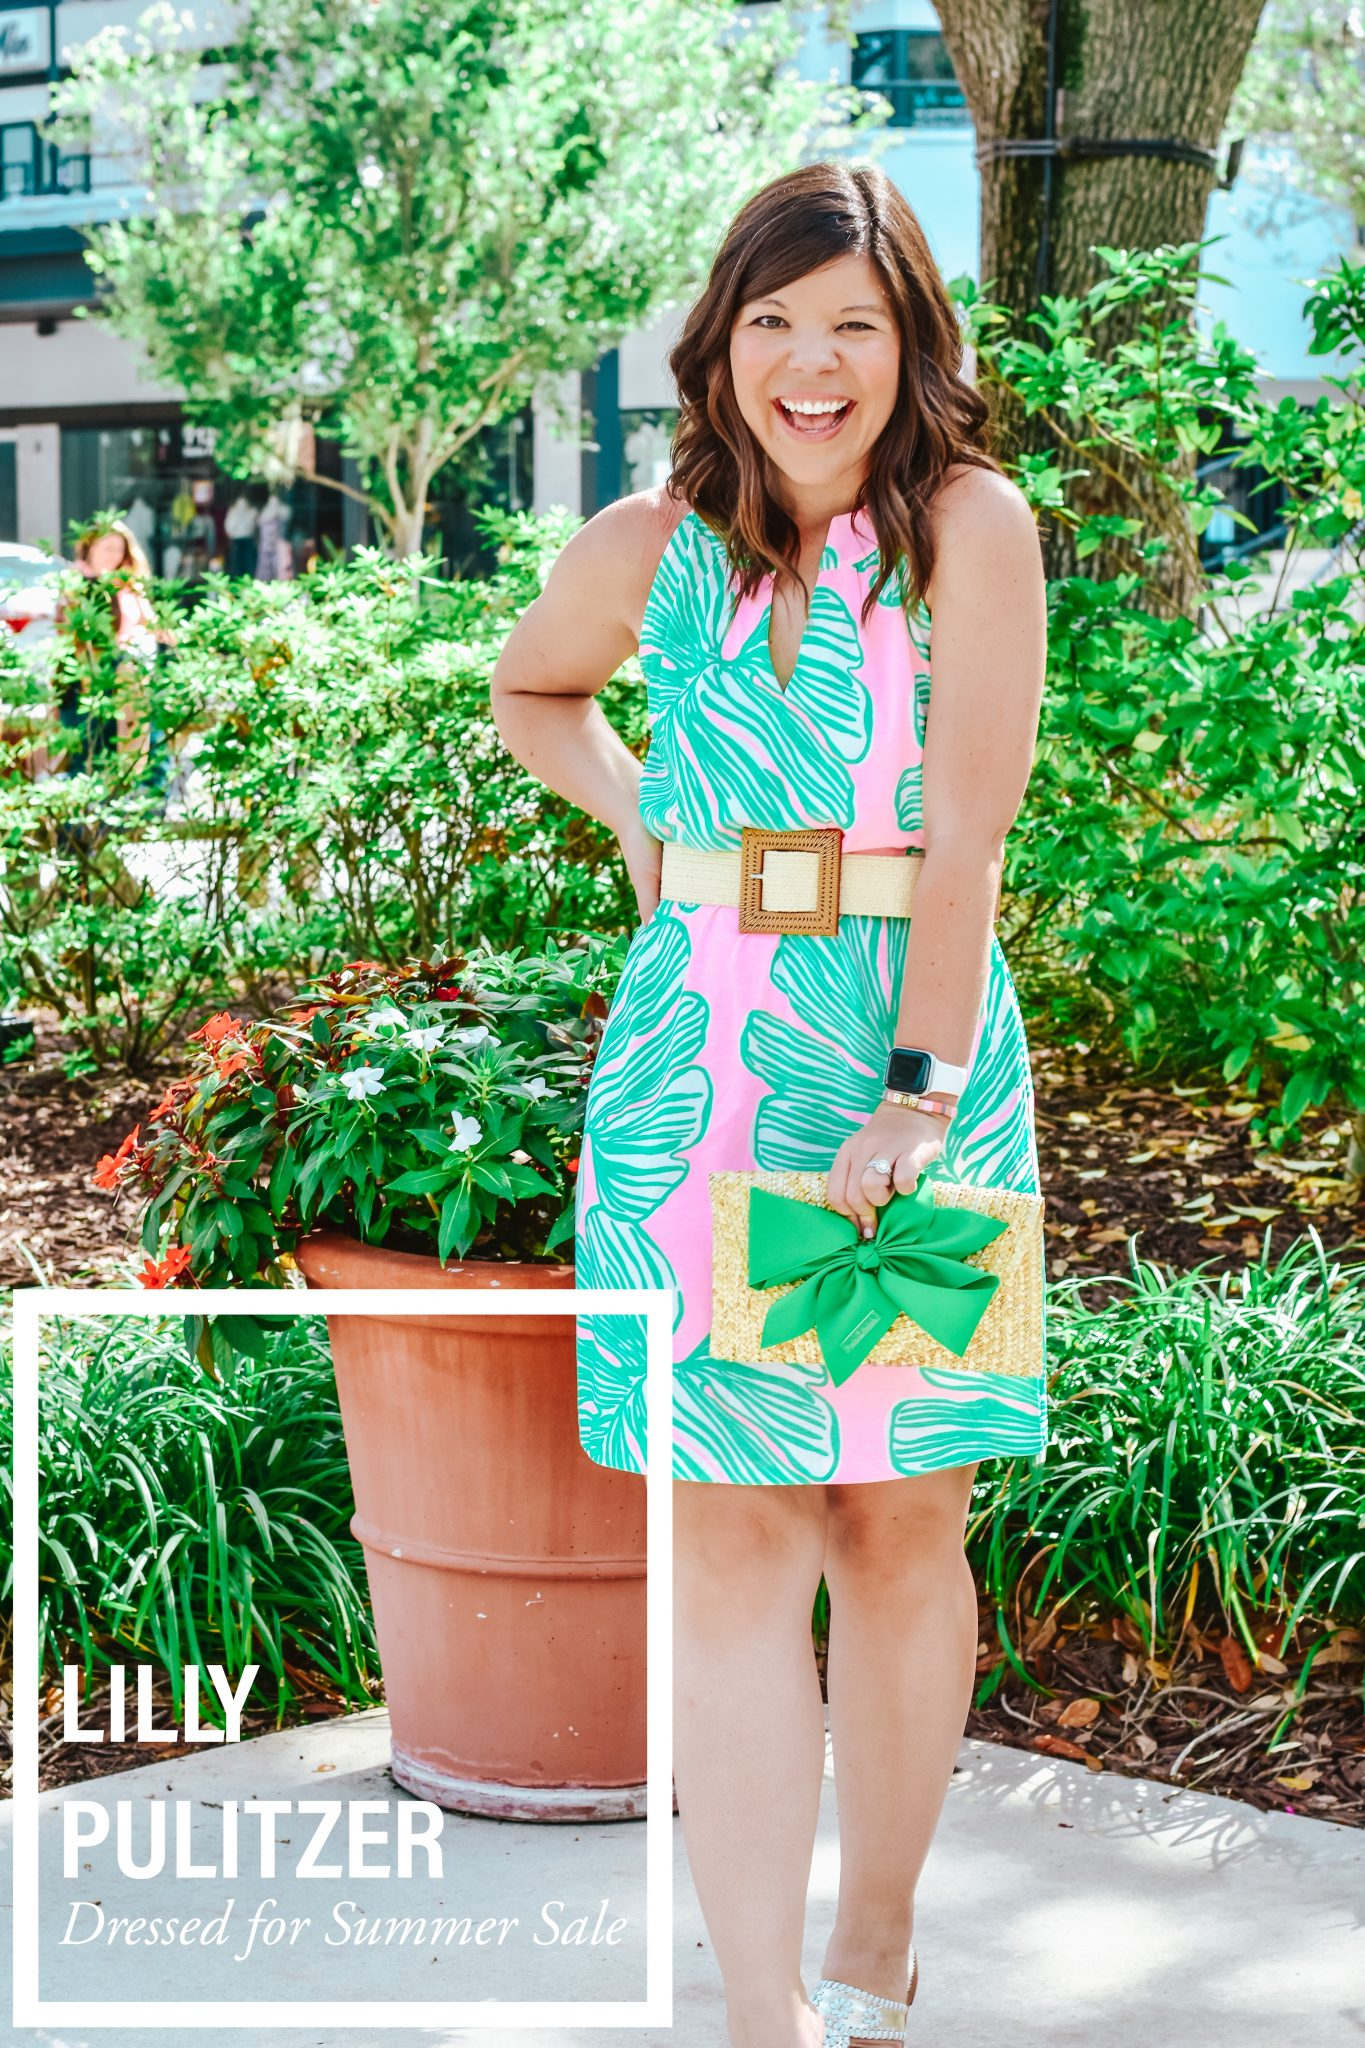 Lilly Pulitzer Dressed for Summer Sale!!